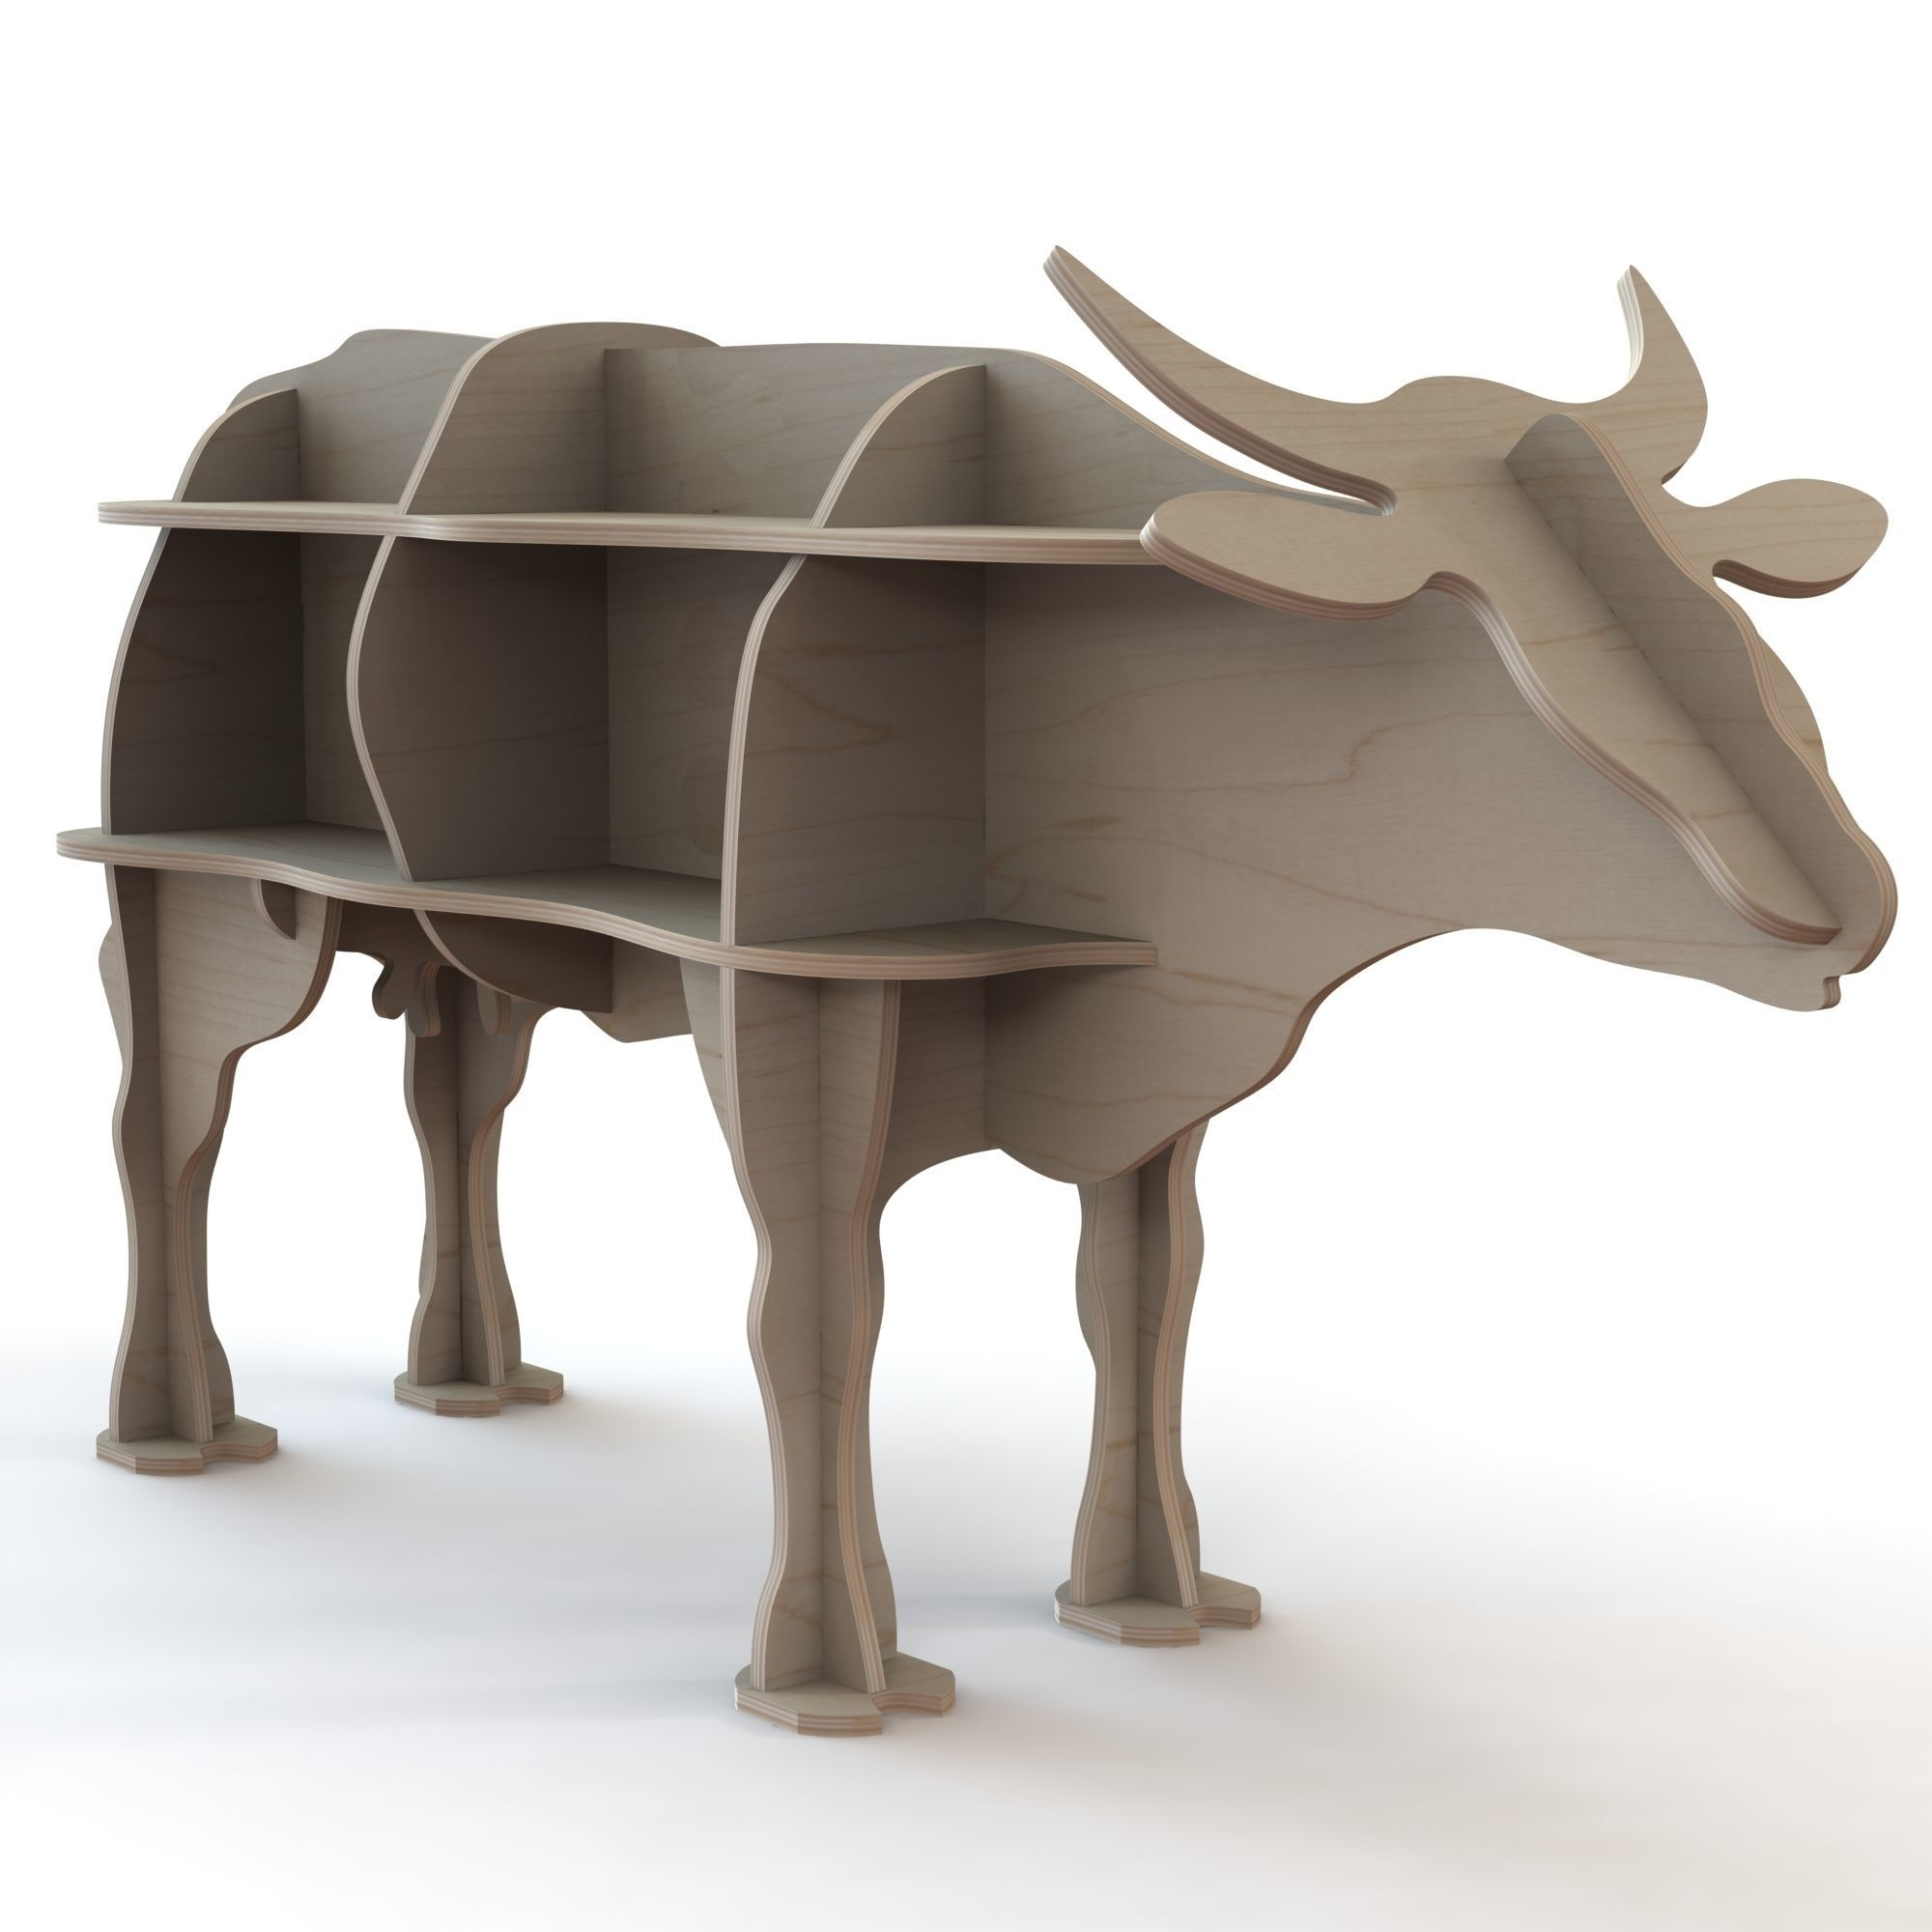 CNC Cutting pattern for wooden cow figure